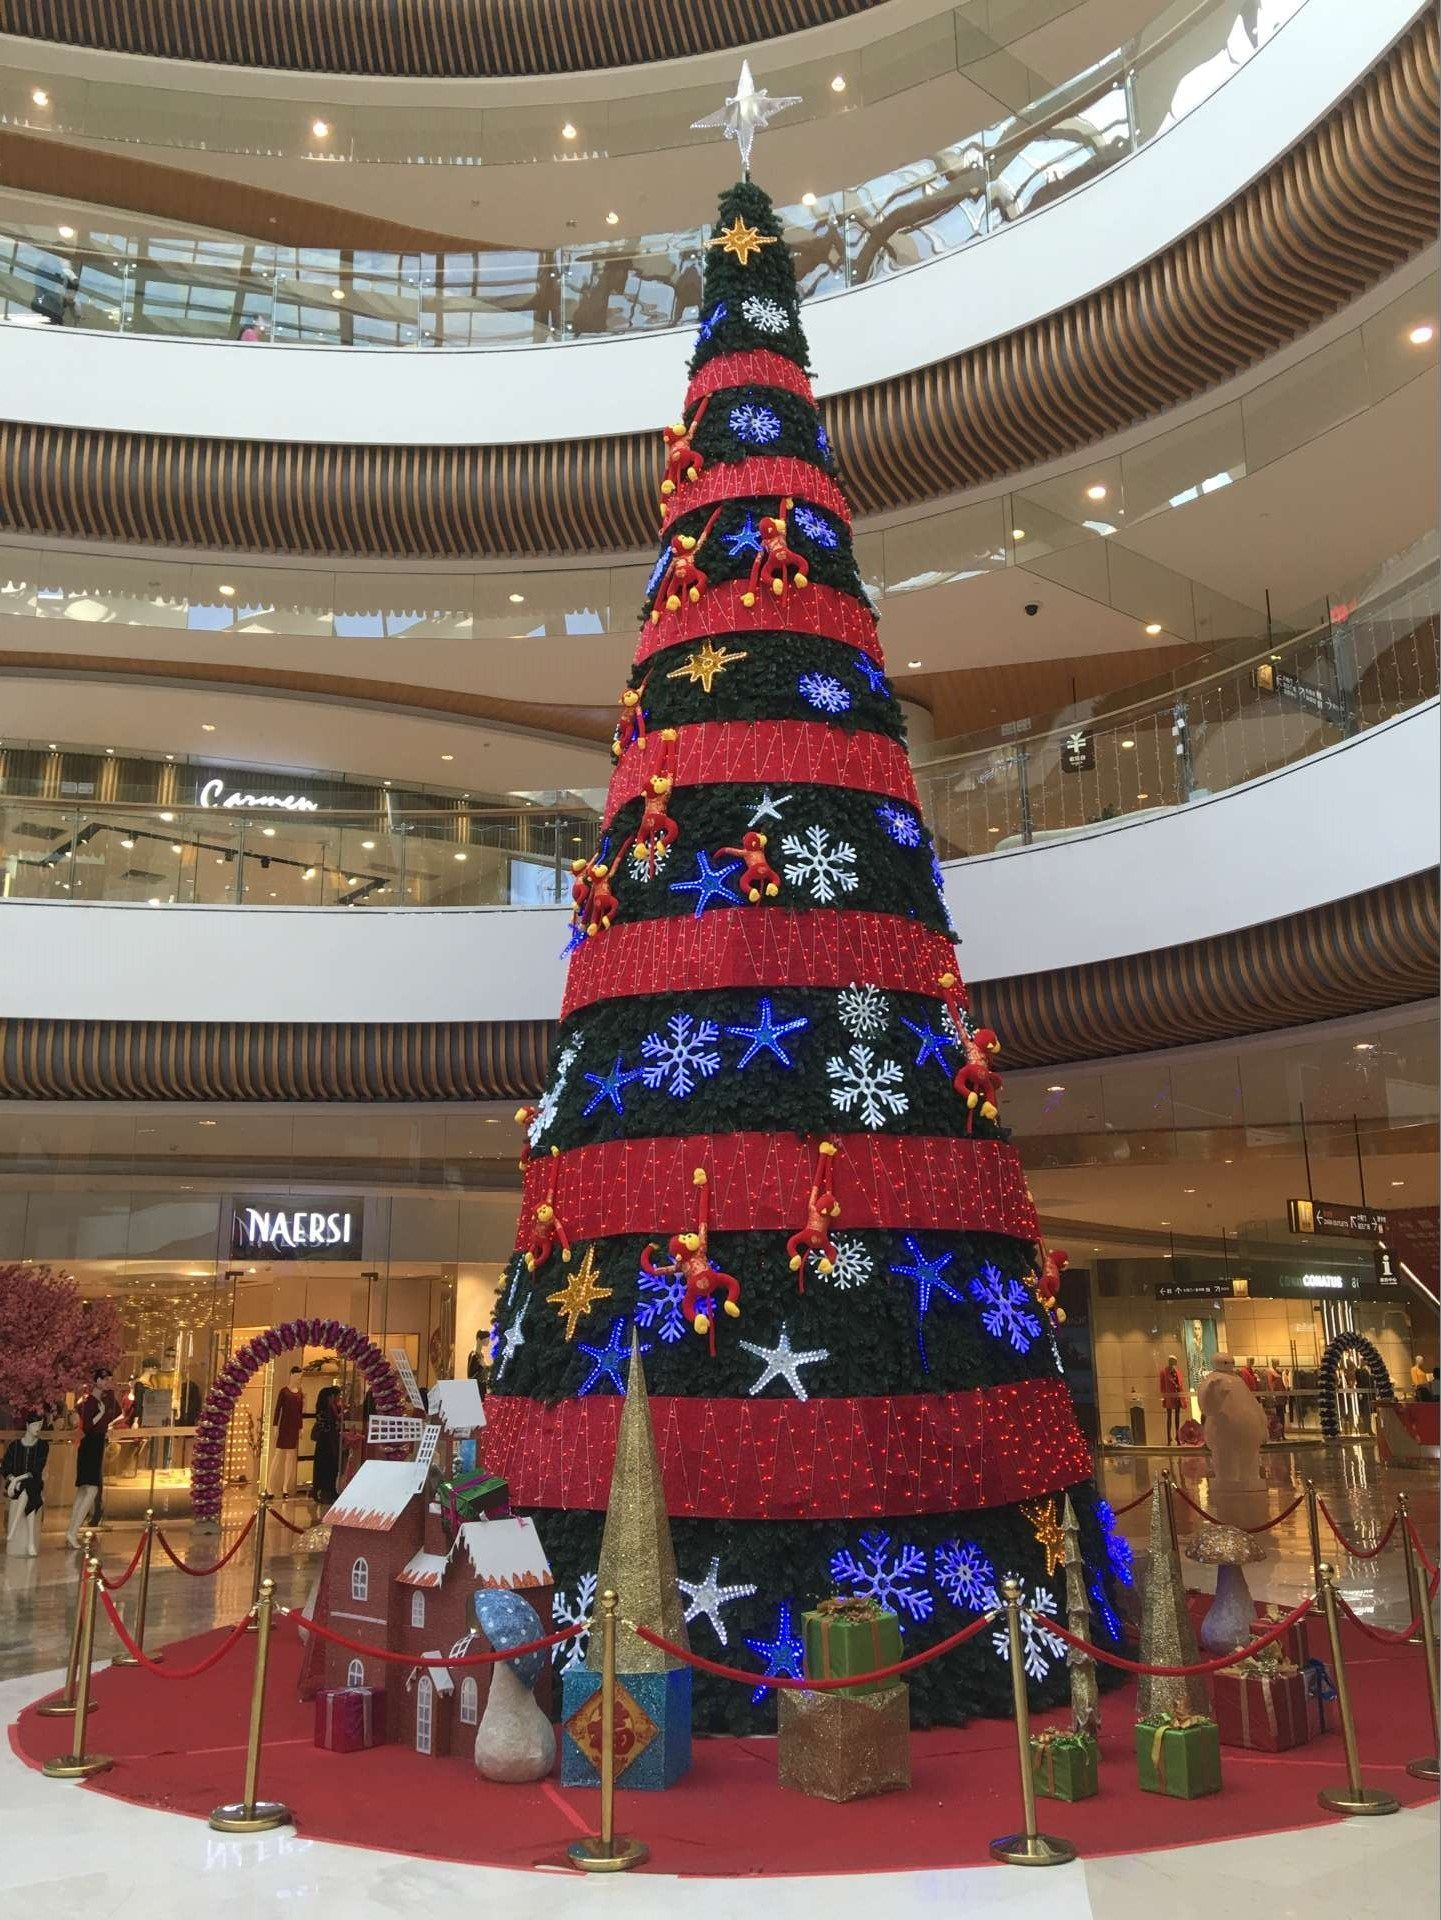 Mall Decorative Lighted Commercial Christmas Tree